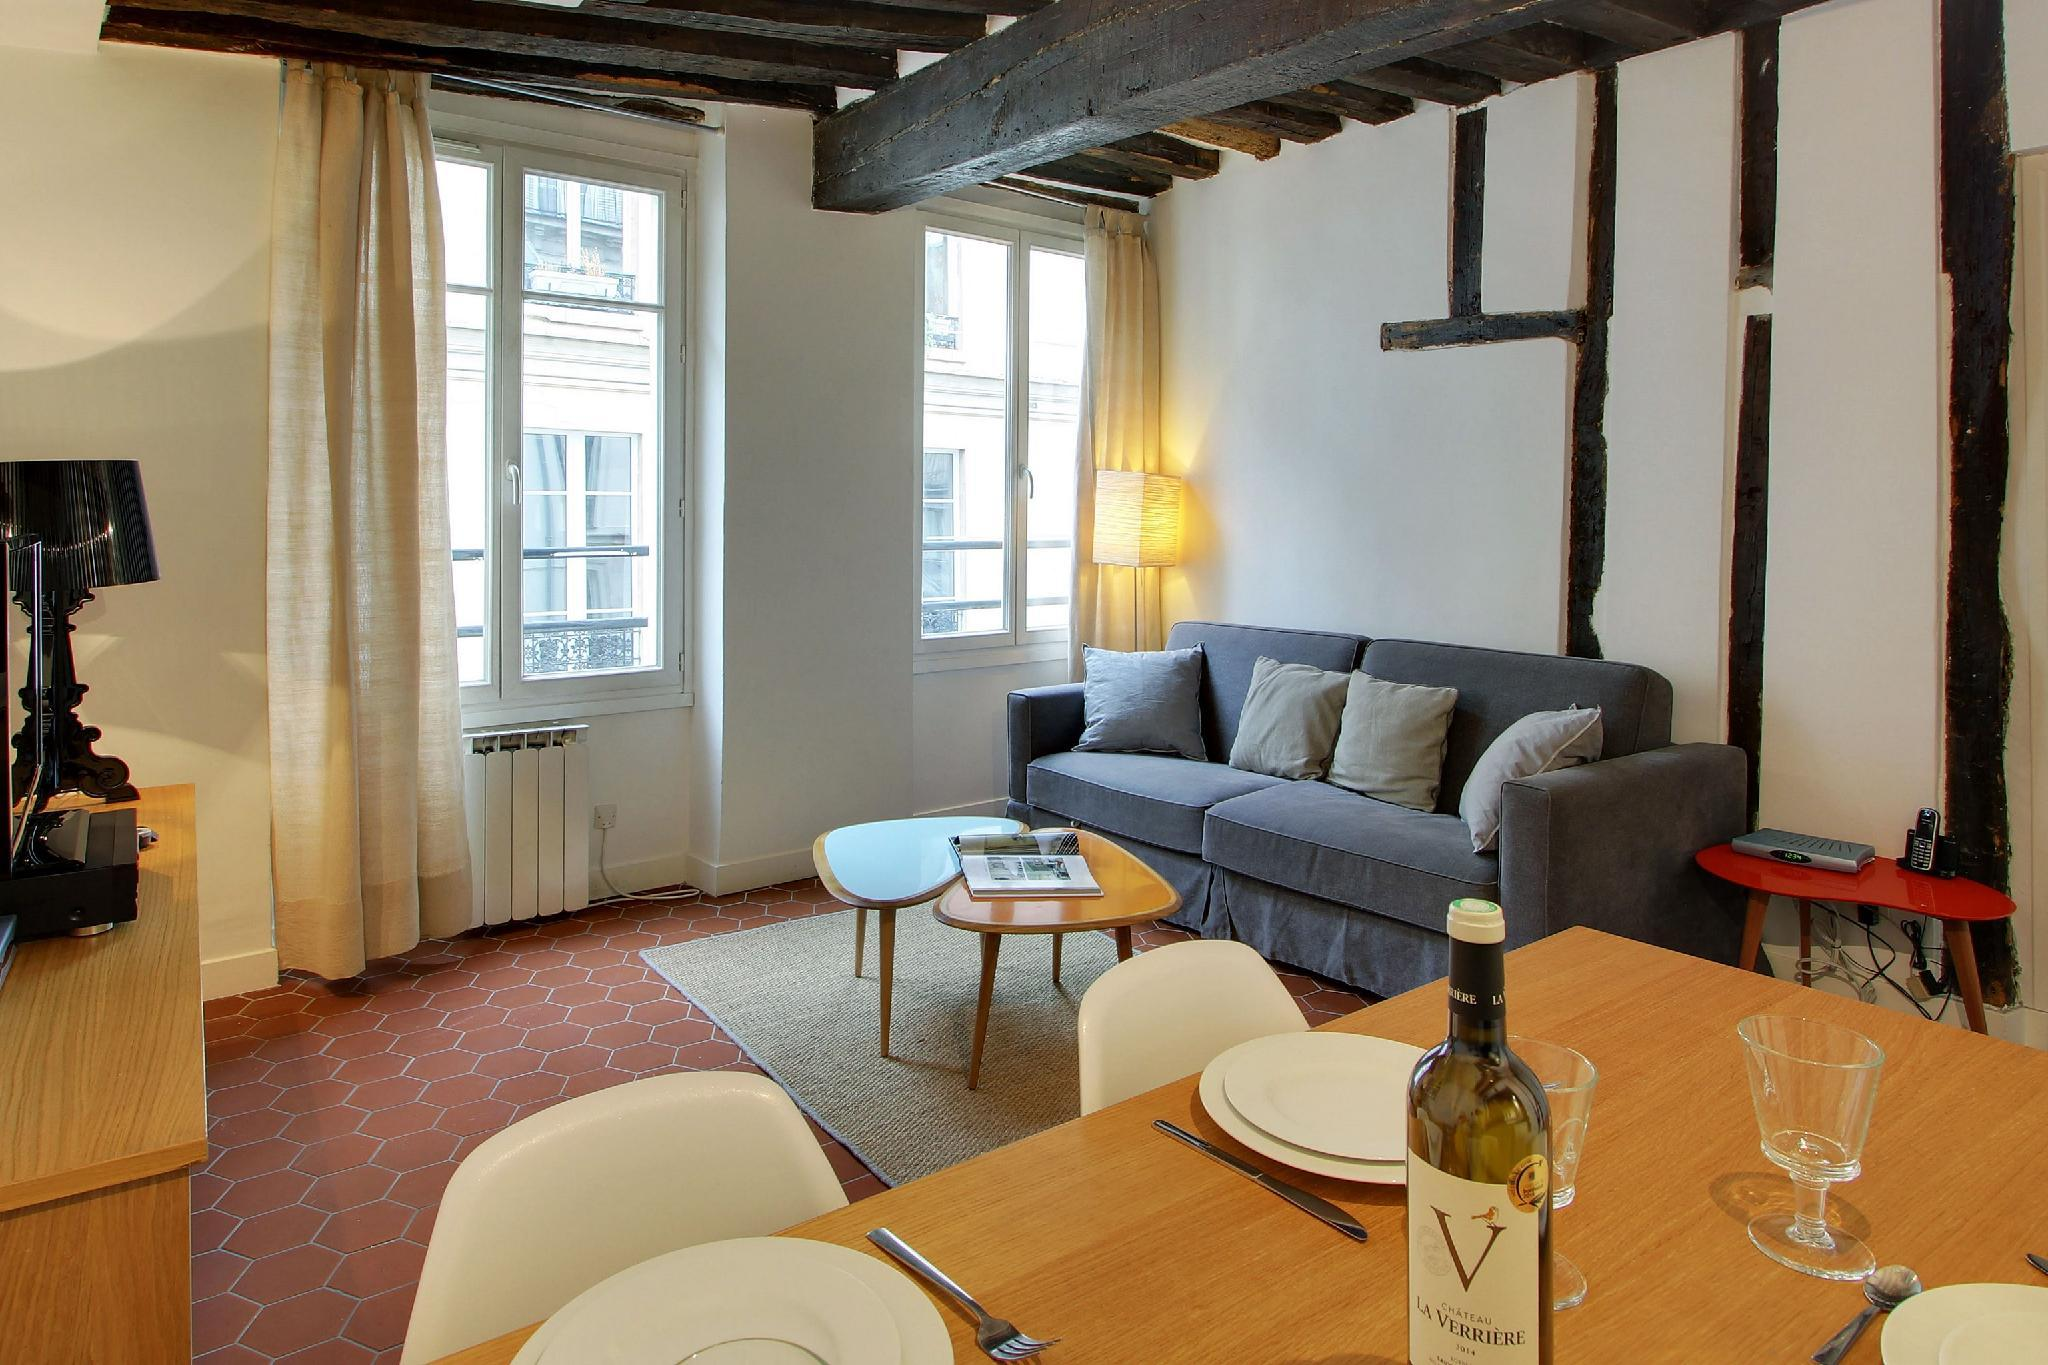 102162 - Cozy apartment for 4 people in the Marais